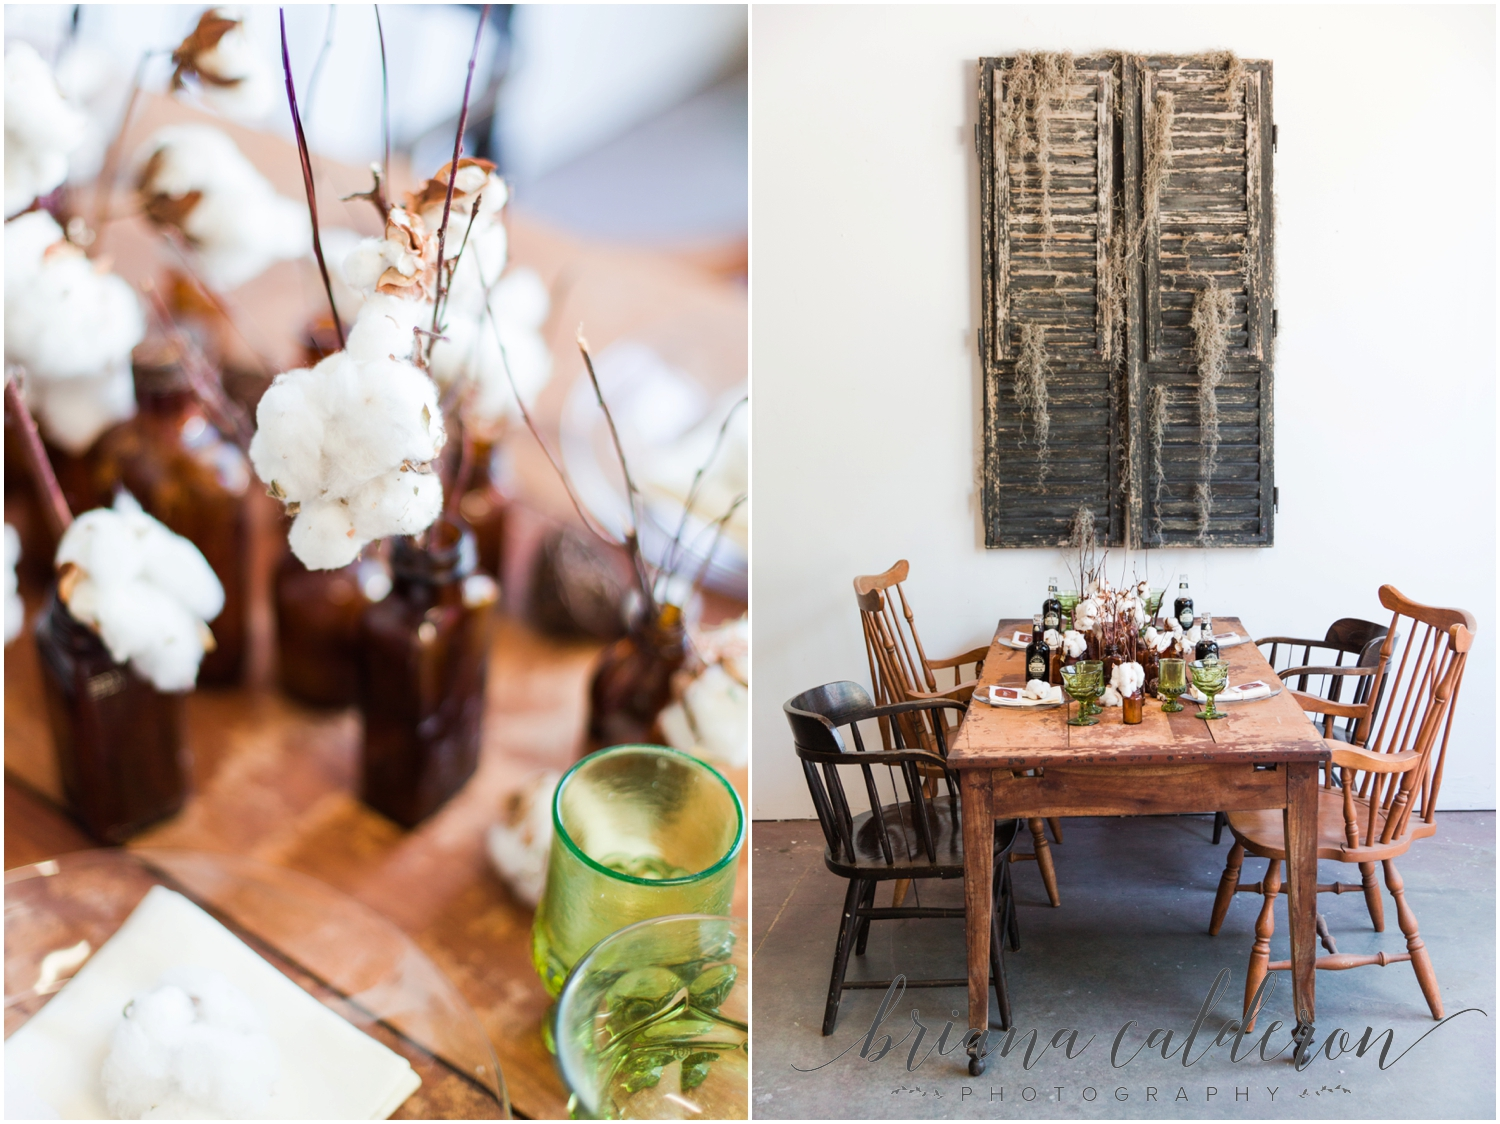 Seventh Heaven Vintage Rental styled shoot. Photos by Briana Calderon Photography_0738.jpg